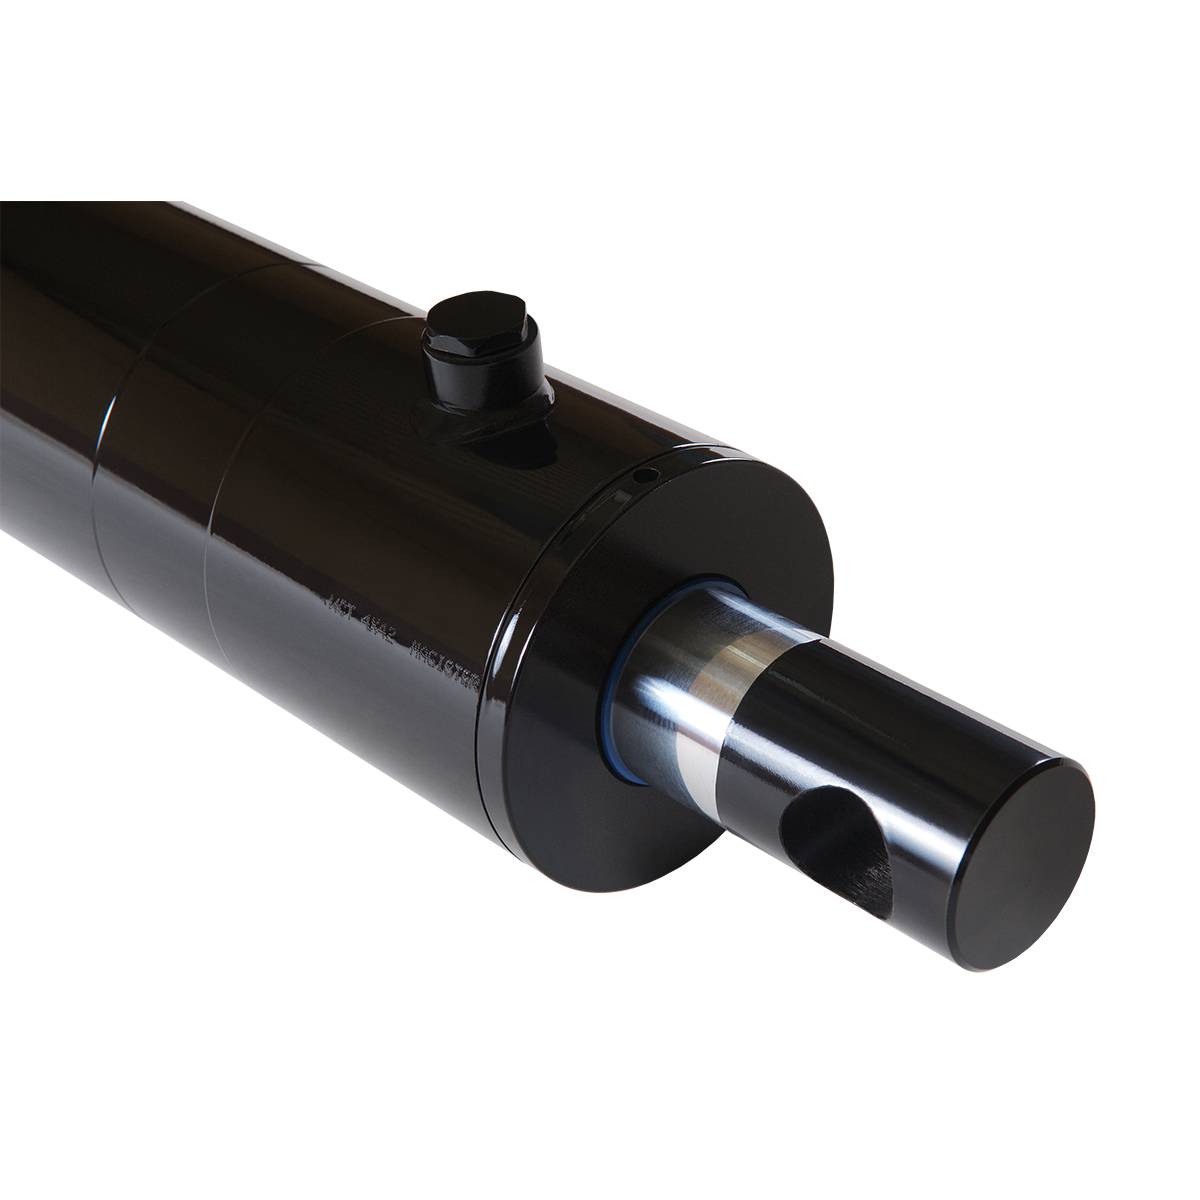 4 bore x 30 stroke hydraulic cylinder, welded pin eye double acting cylinder | Magister Hydraulics